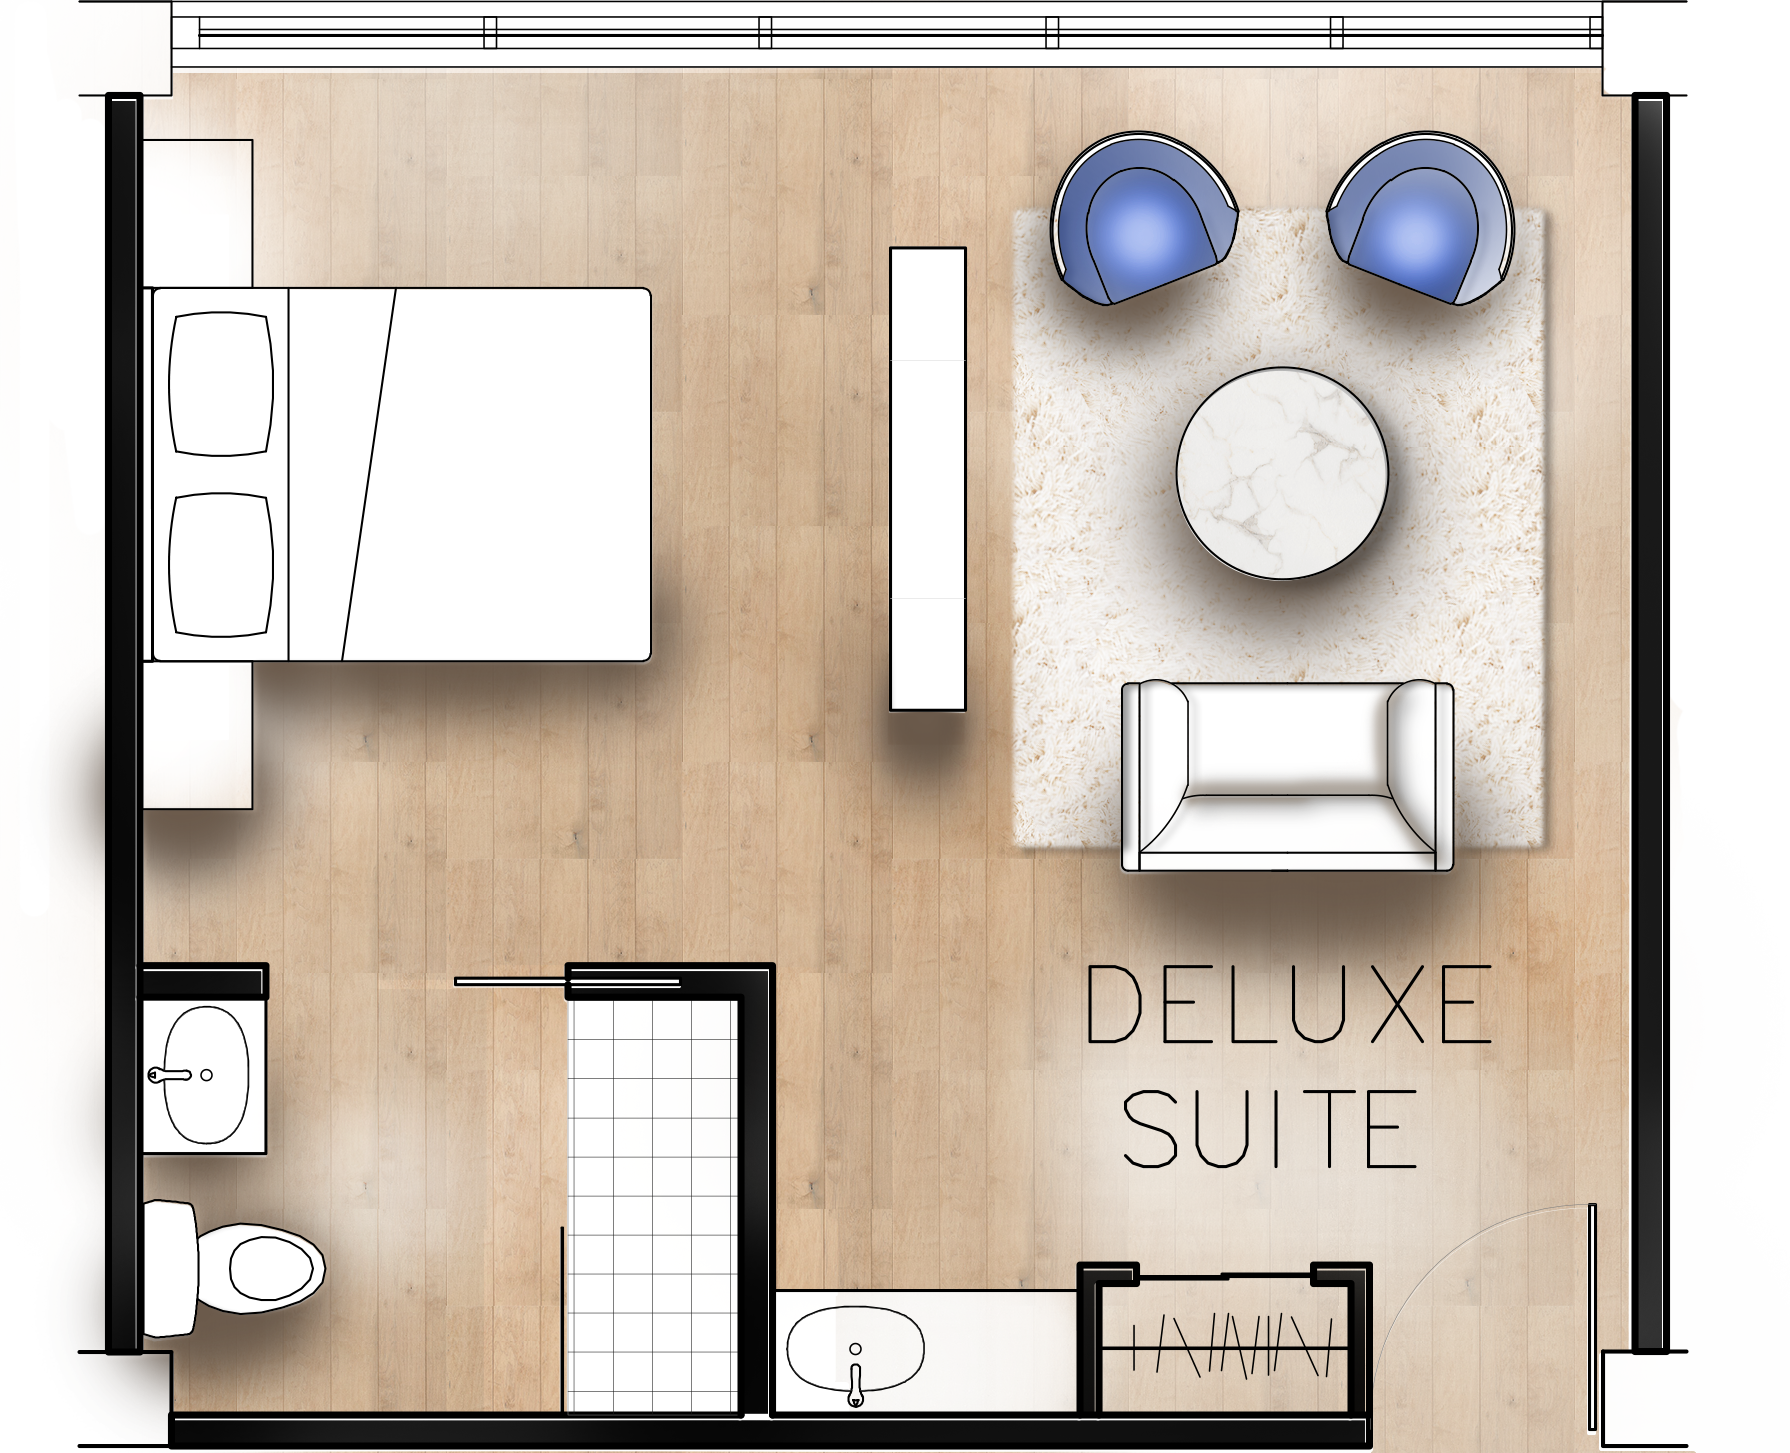 DELUXE SUITE revised.png